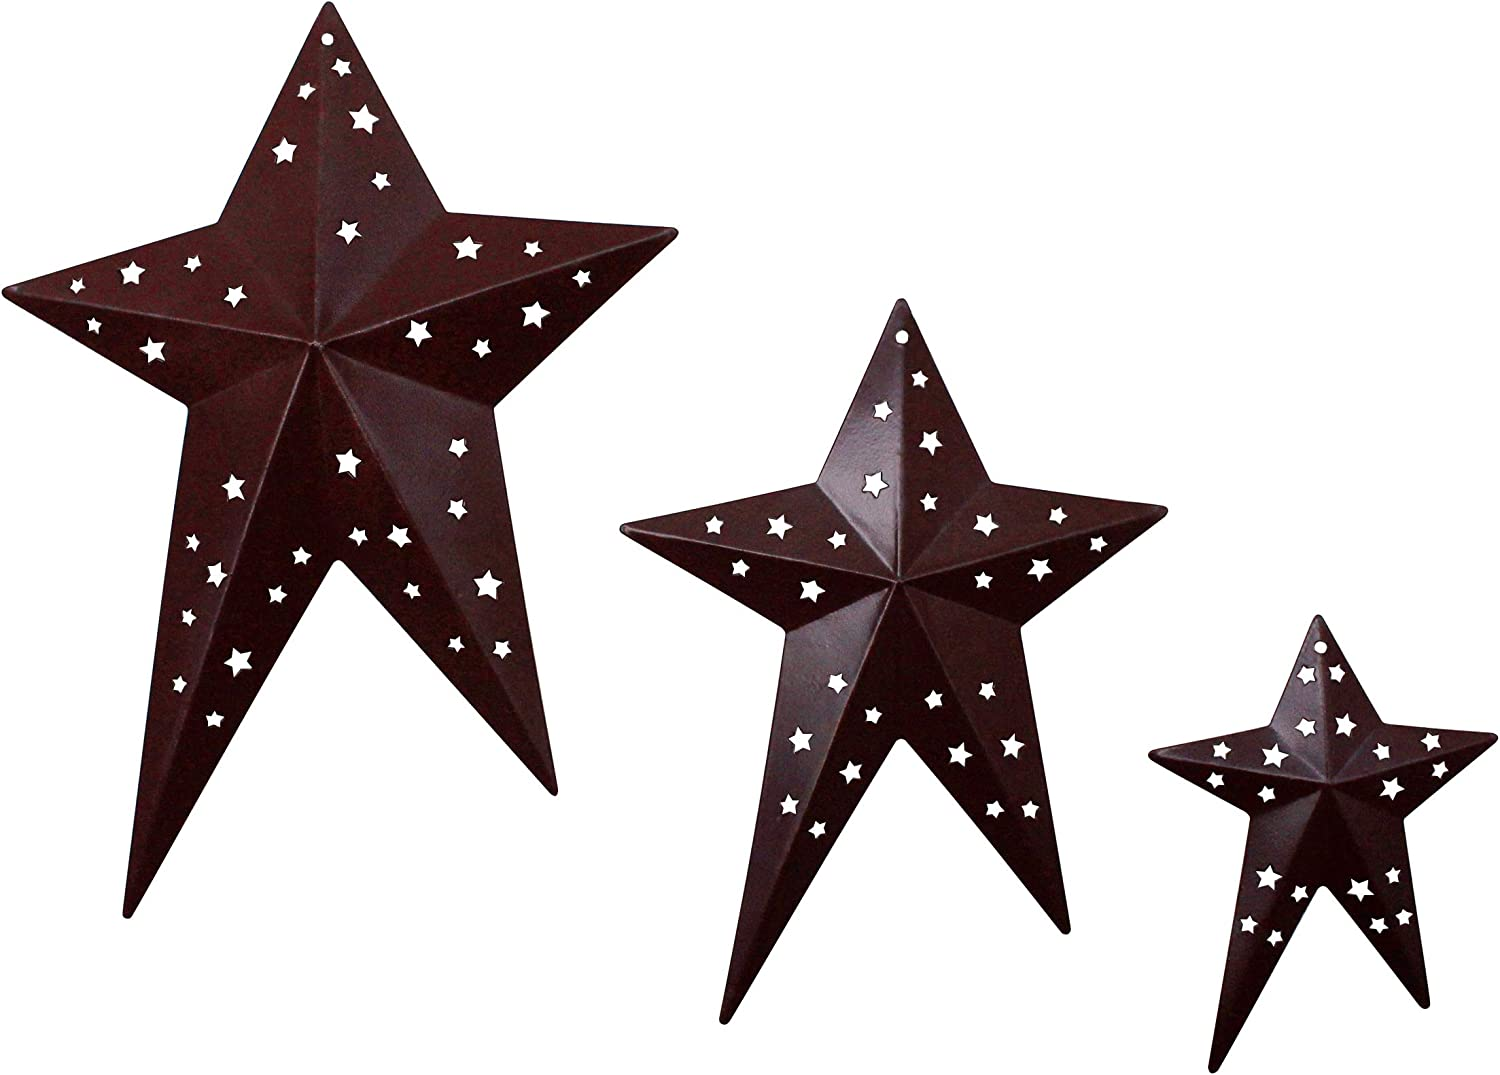 CVHOMEDECO. Primitives Rustic Vintage Gifts Burgundy Punched Metal Barn Stars for Wall/Wreaths/Twigs Decor, 8/6/4 Inch, Set of 3